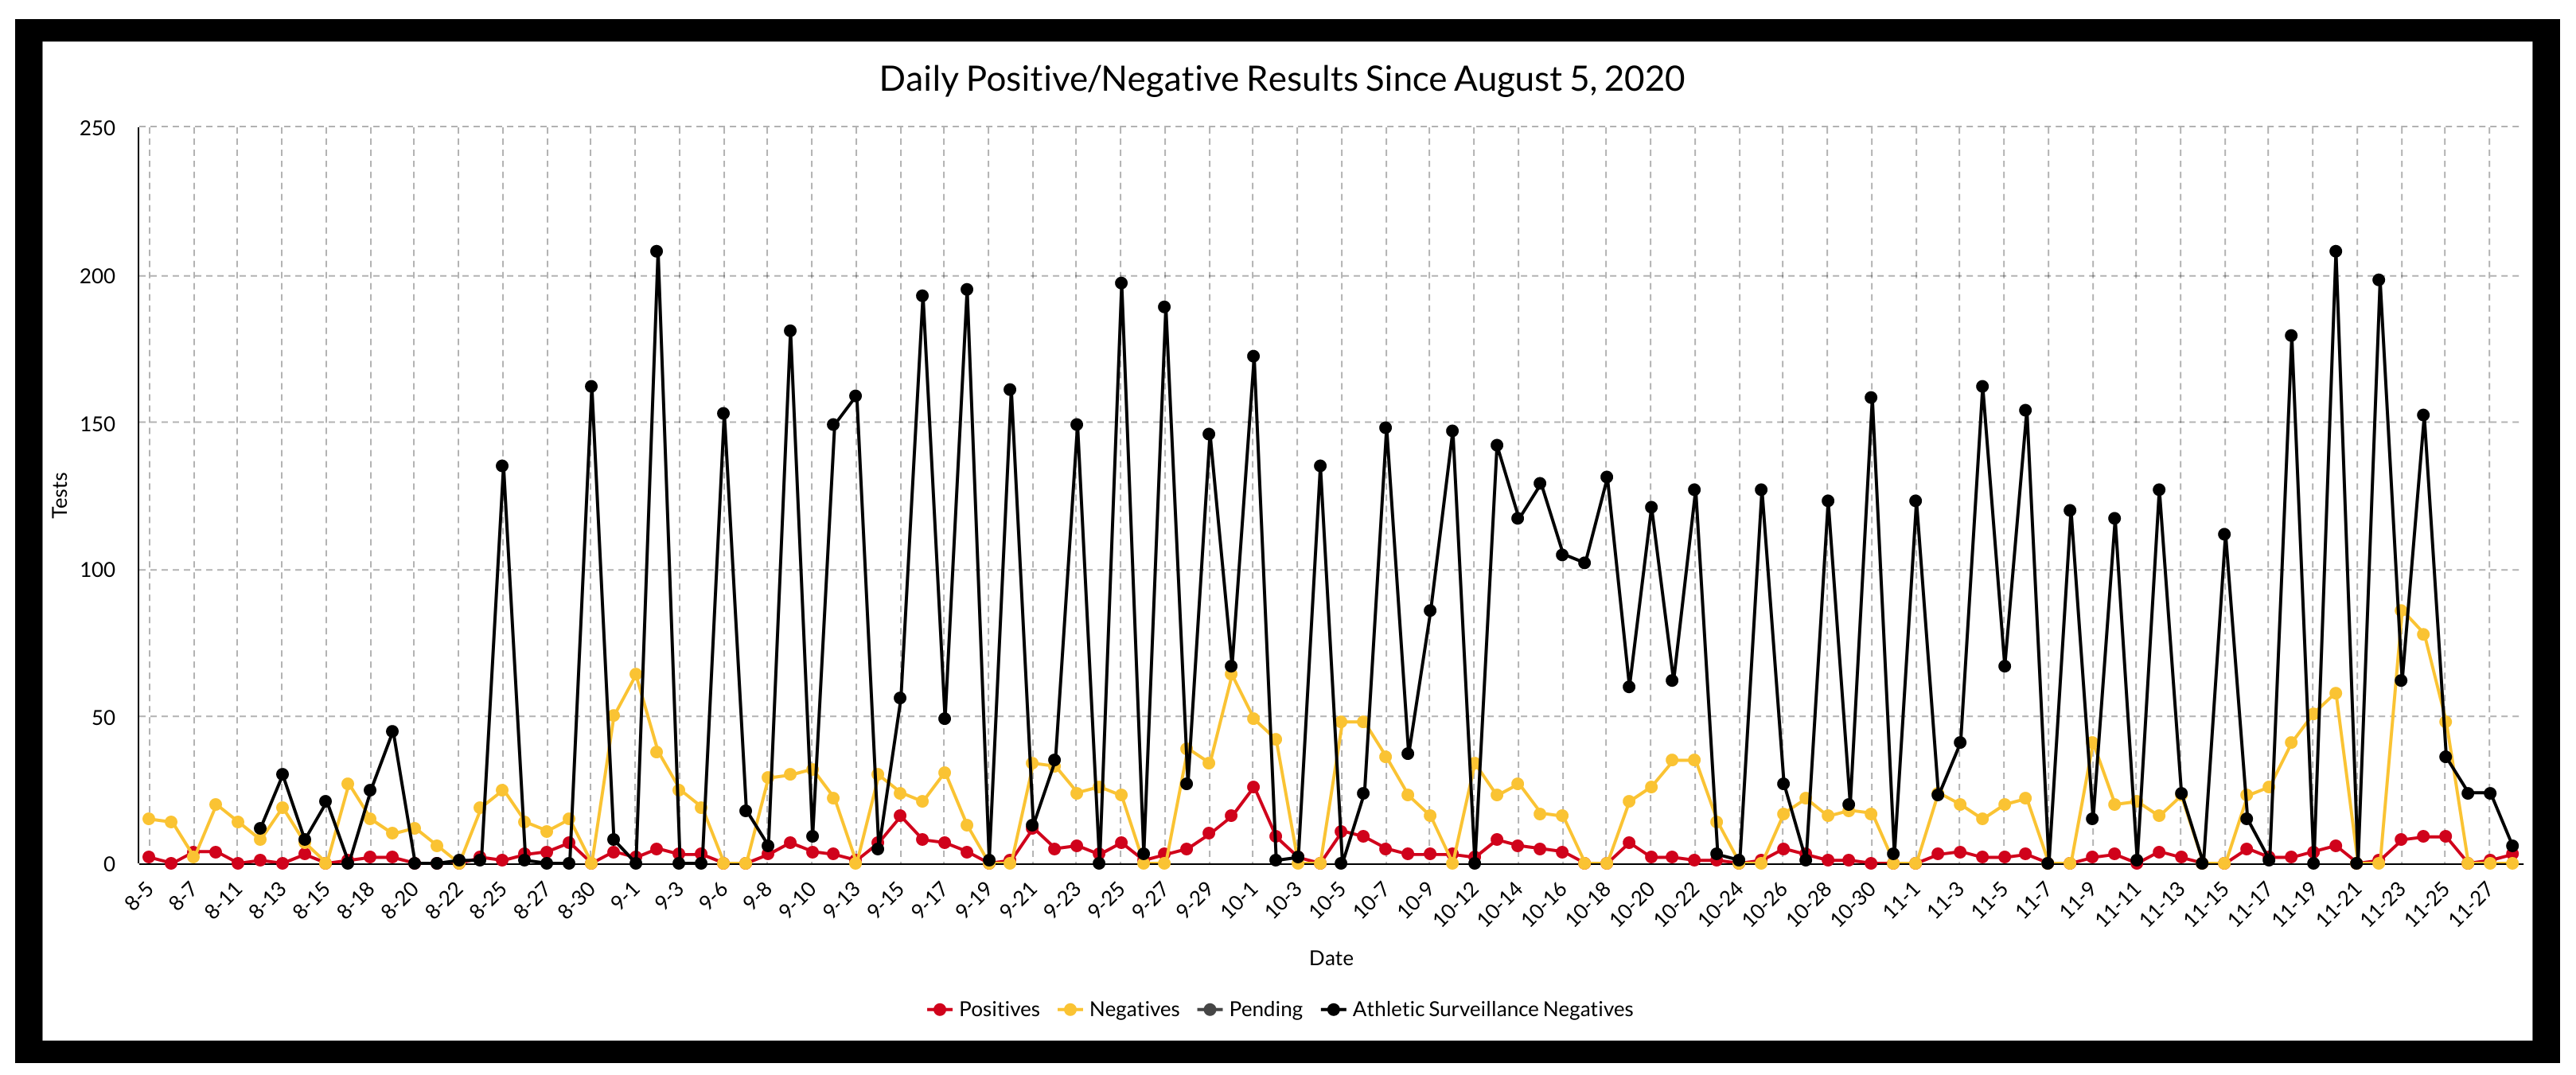 Daily Testing Numbers - Pos/Neg Since August 5th